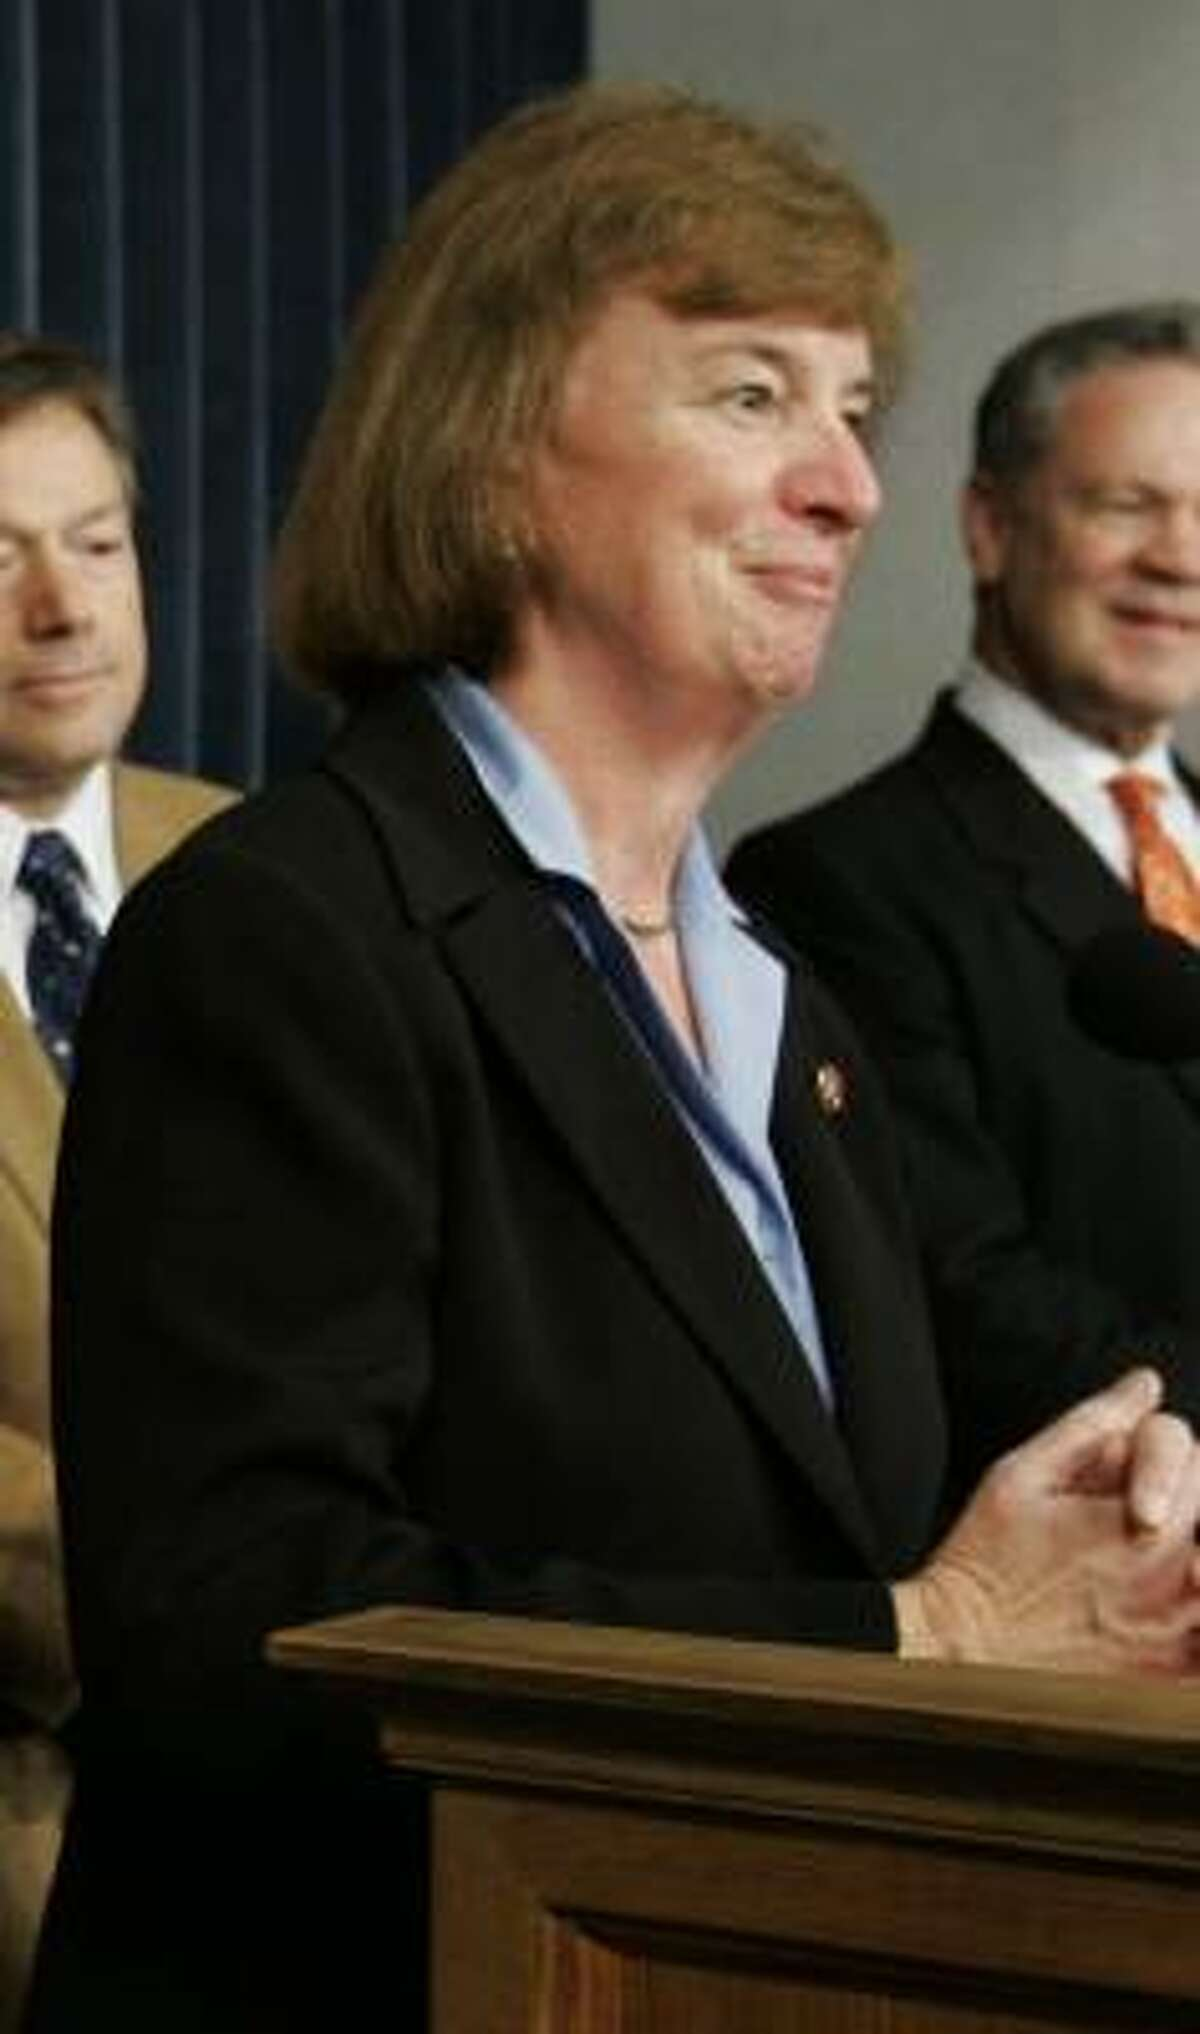 Rep. Carol Shea-Porter, (D-N.H.) Instead of going to the Inauguration, I'll go to religious services to pray for all of our leaders and people, then will serve my district.